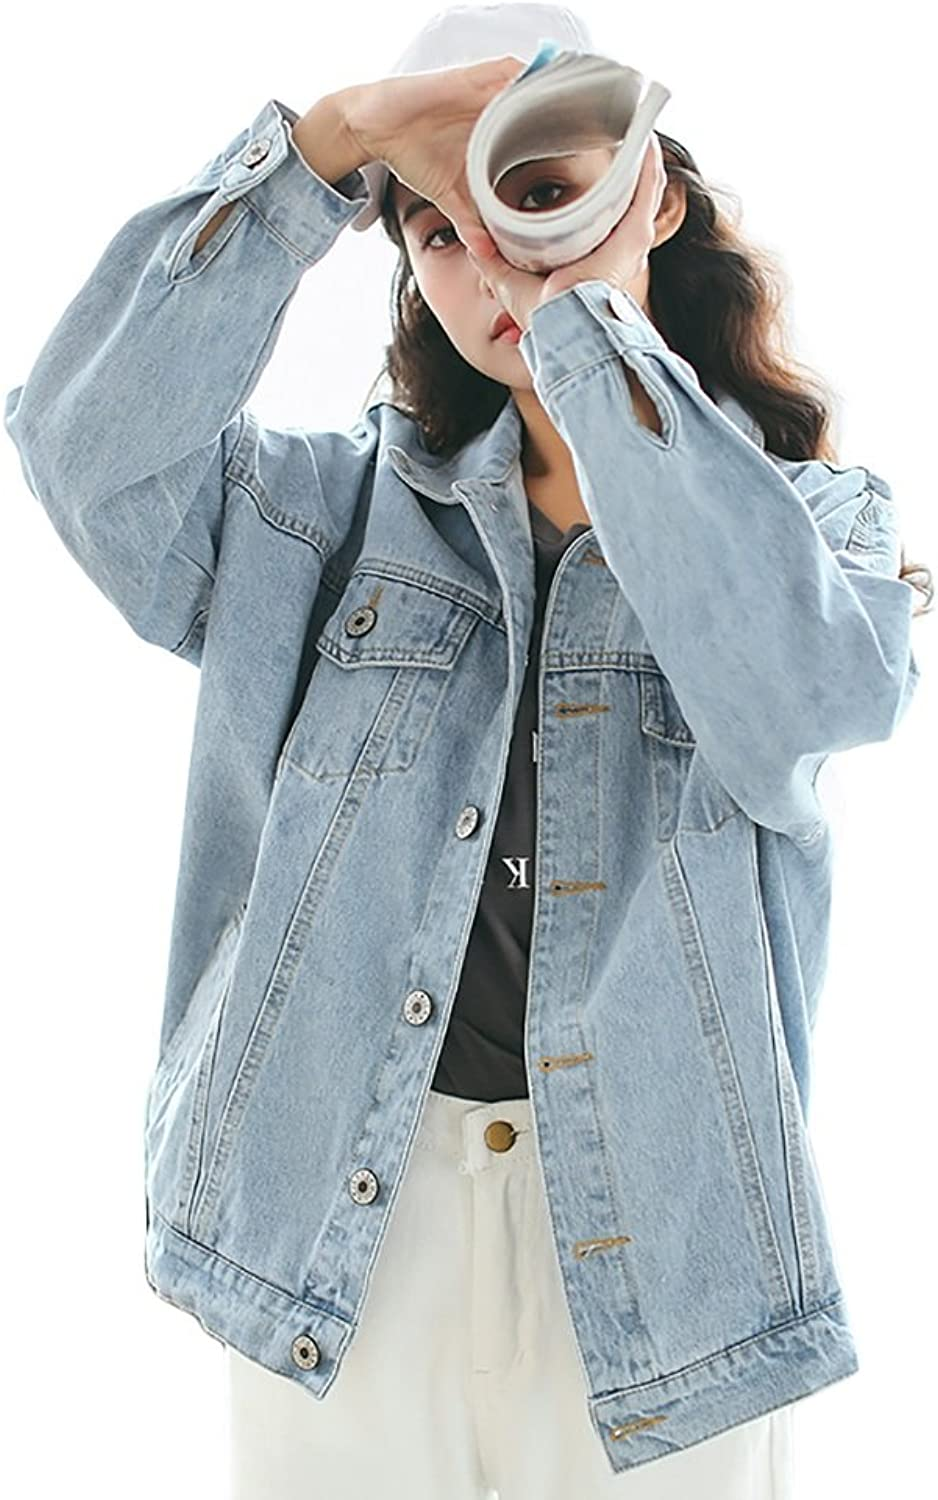 July Denim Jacket Fashion Girls Long Sleeve Coat Retro Cowboy Jacket Student Casual Outerwear (color   Light bluee, Size   XS)